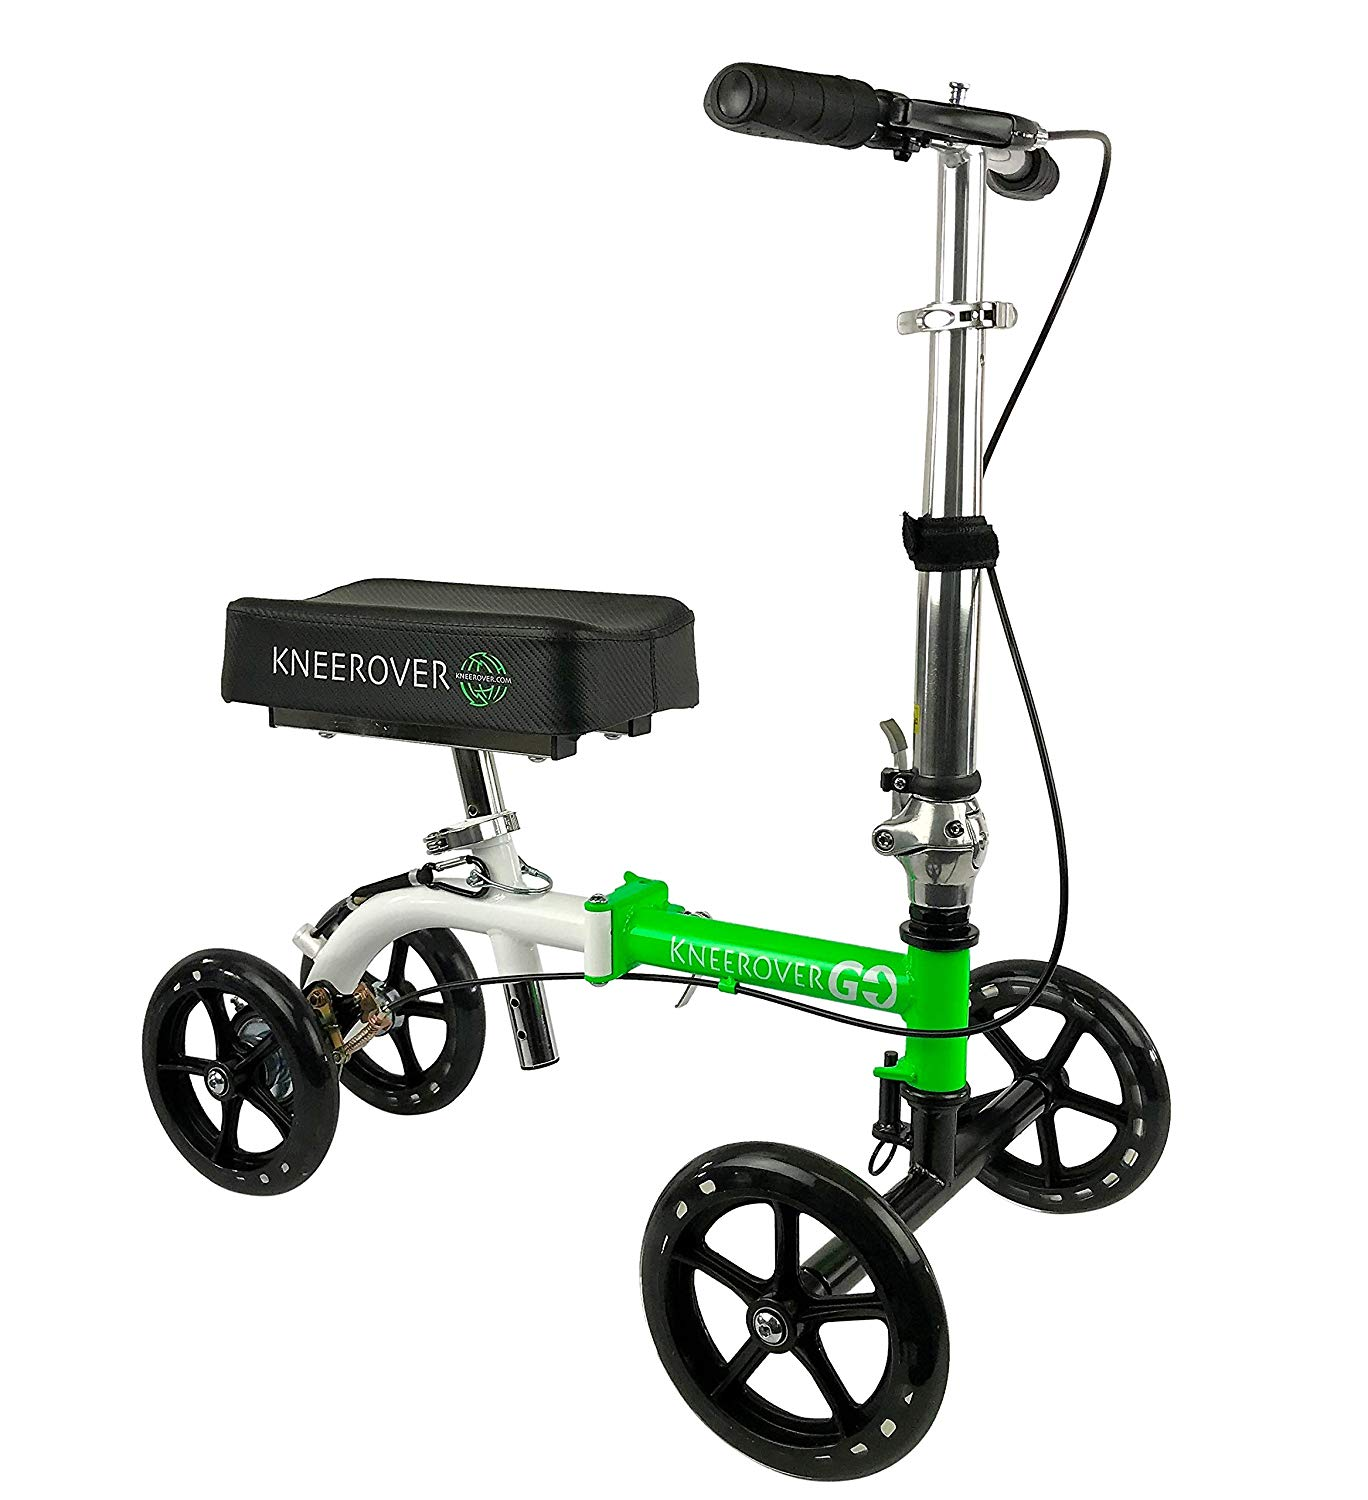 KneeRover GO Knee Walker